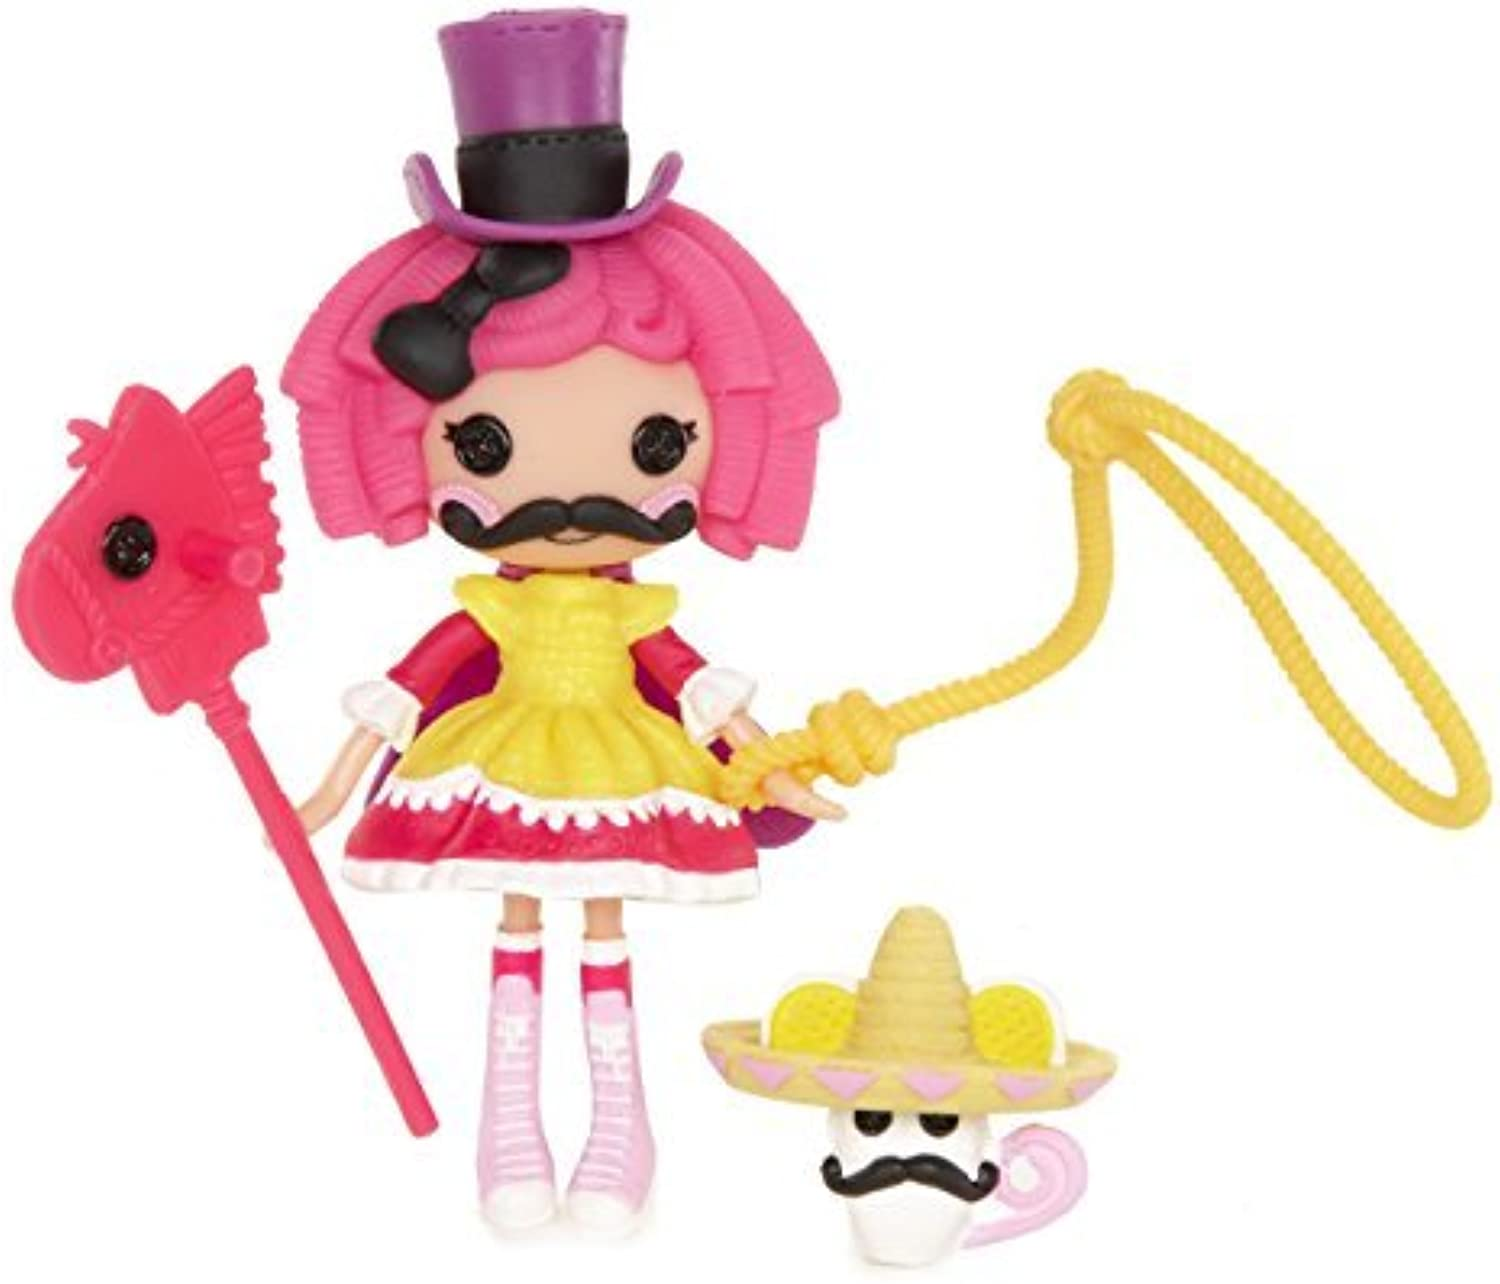 Mini Lalaloopsy Moments in Time Doll Crumbs by Lalaloopsy